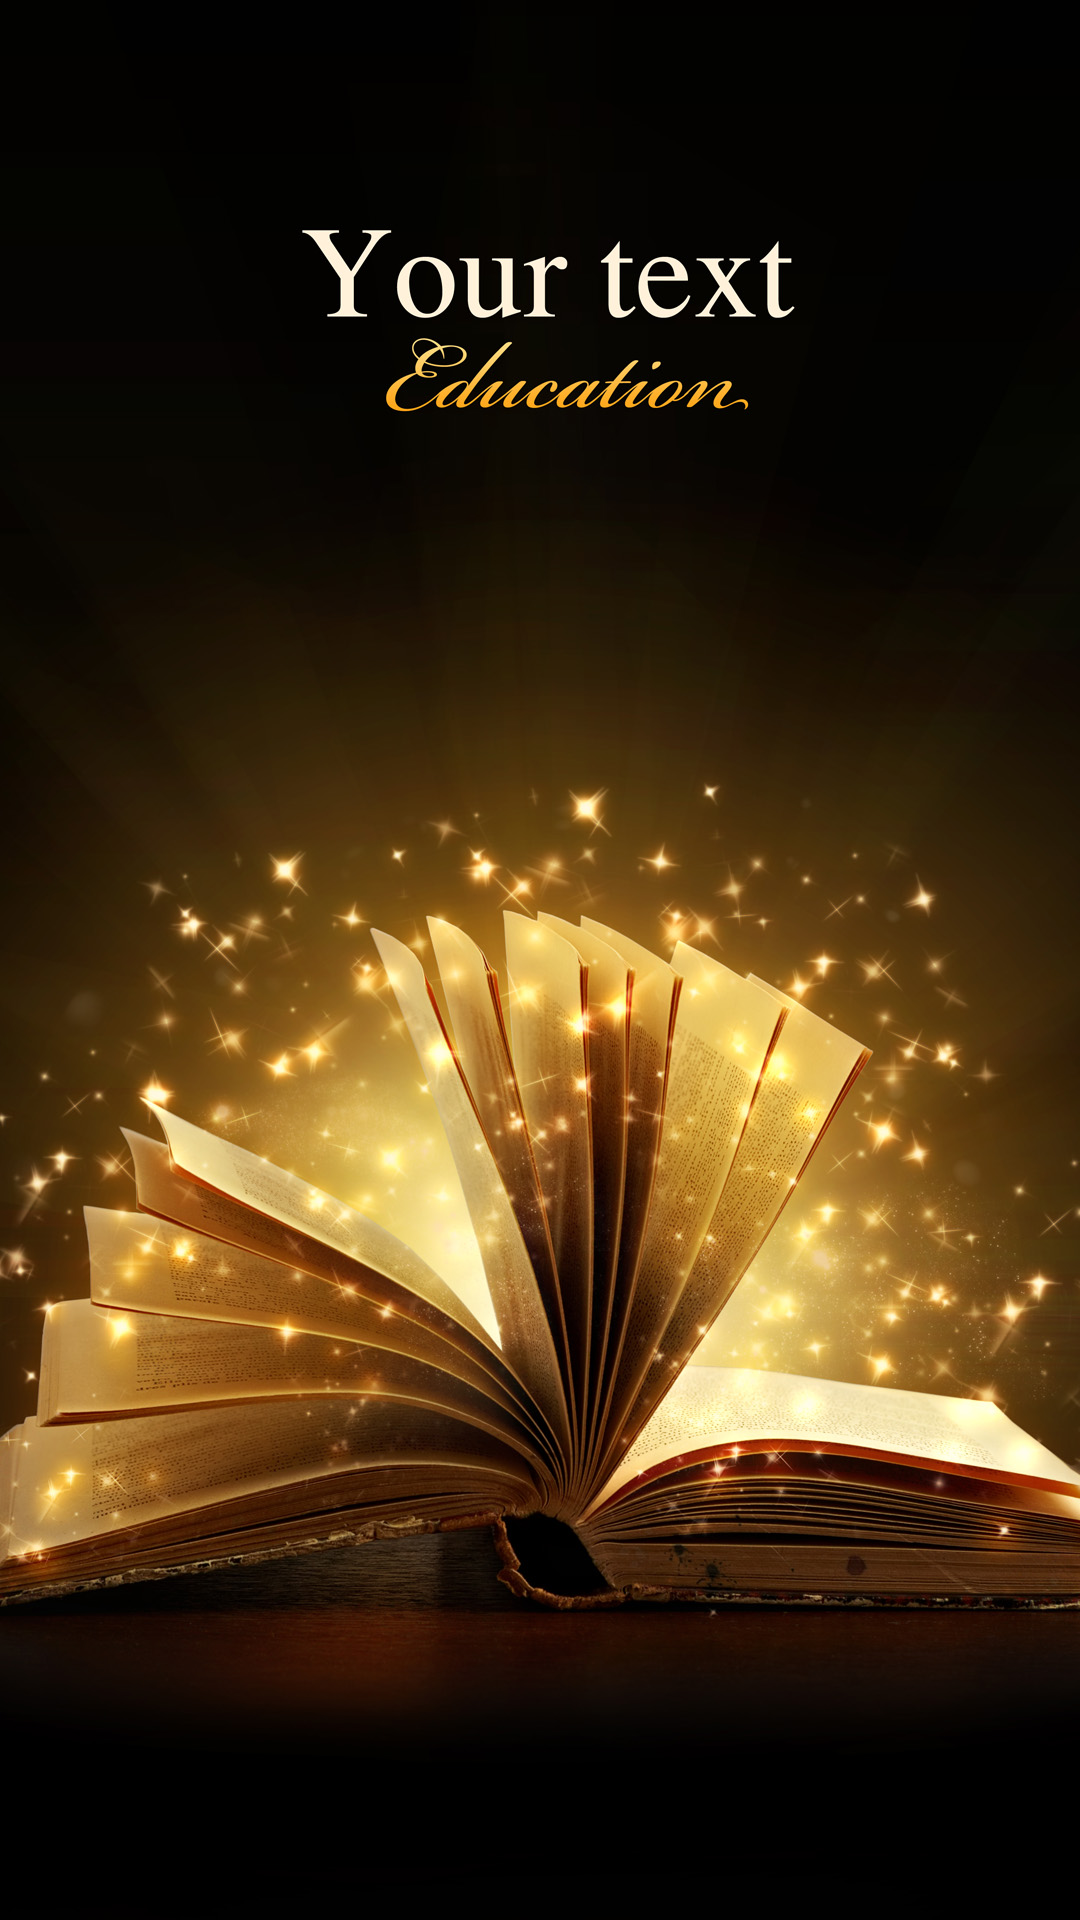 creative magic books android wallpaper - android hd wallpapers